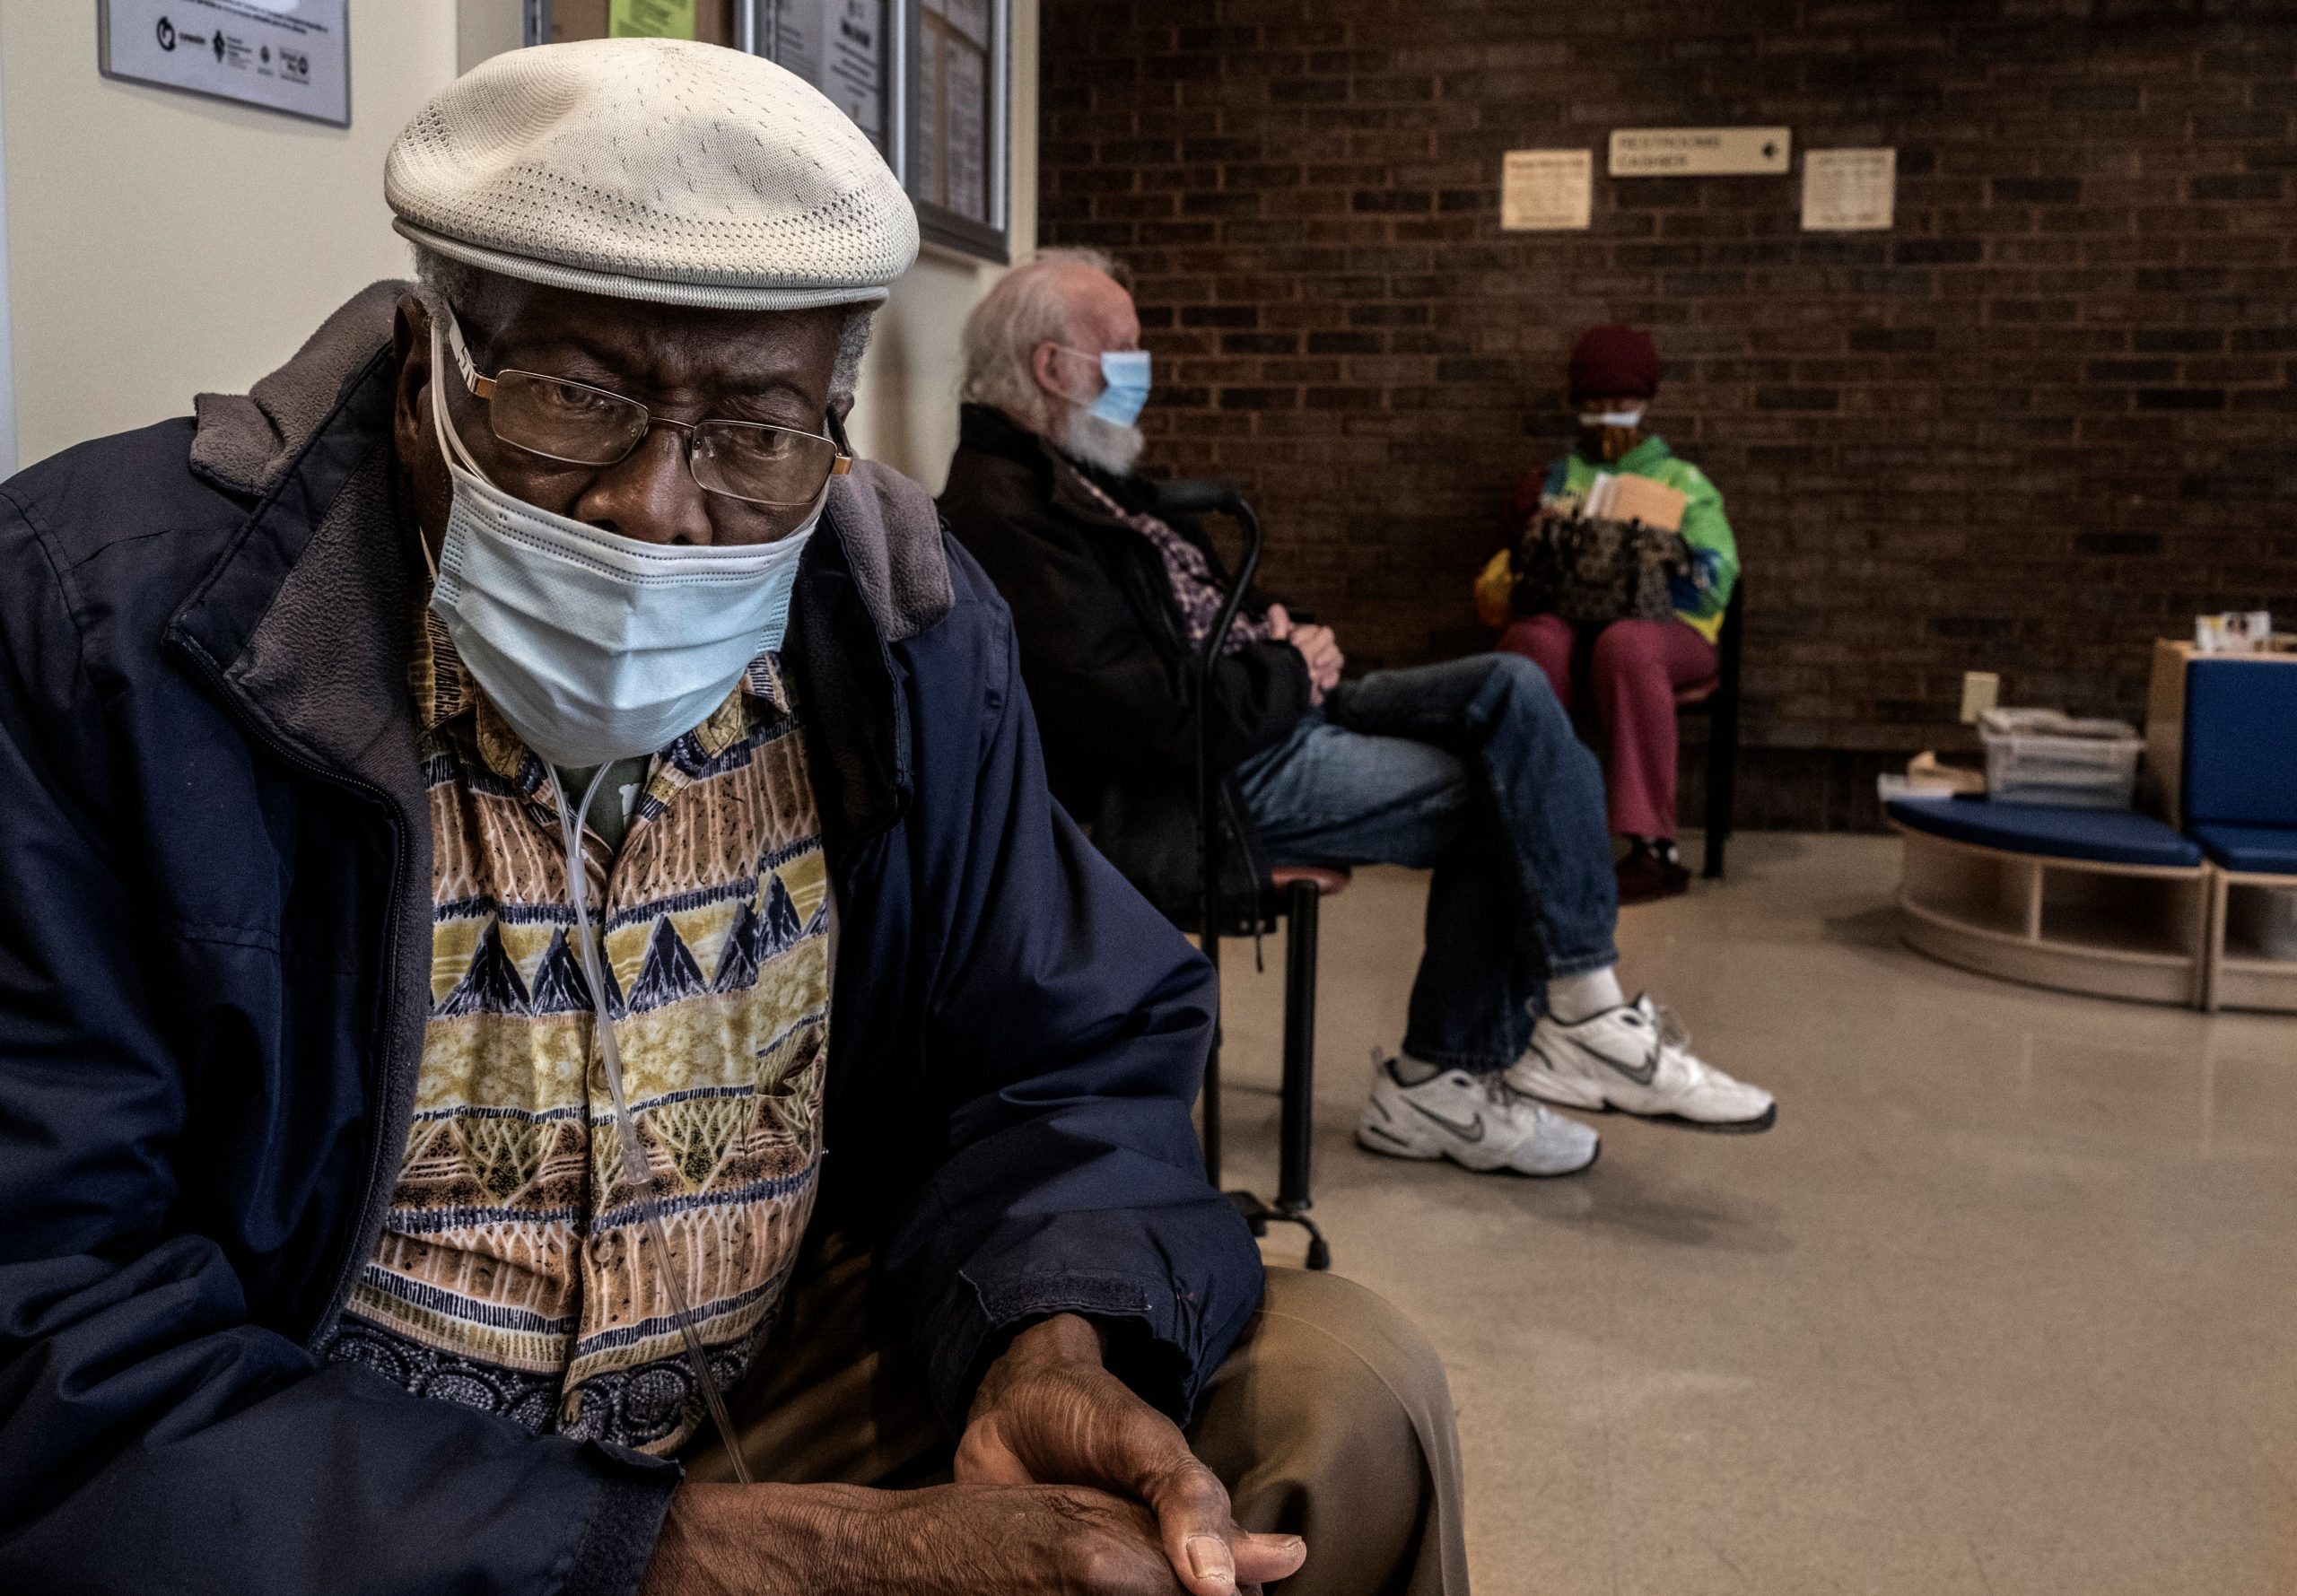 James Burroughs, 84, and other patients wait to get vaccinated at Neighborhood Health in Madison. (Photo: John Partipilo)